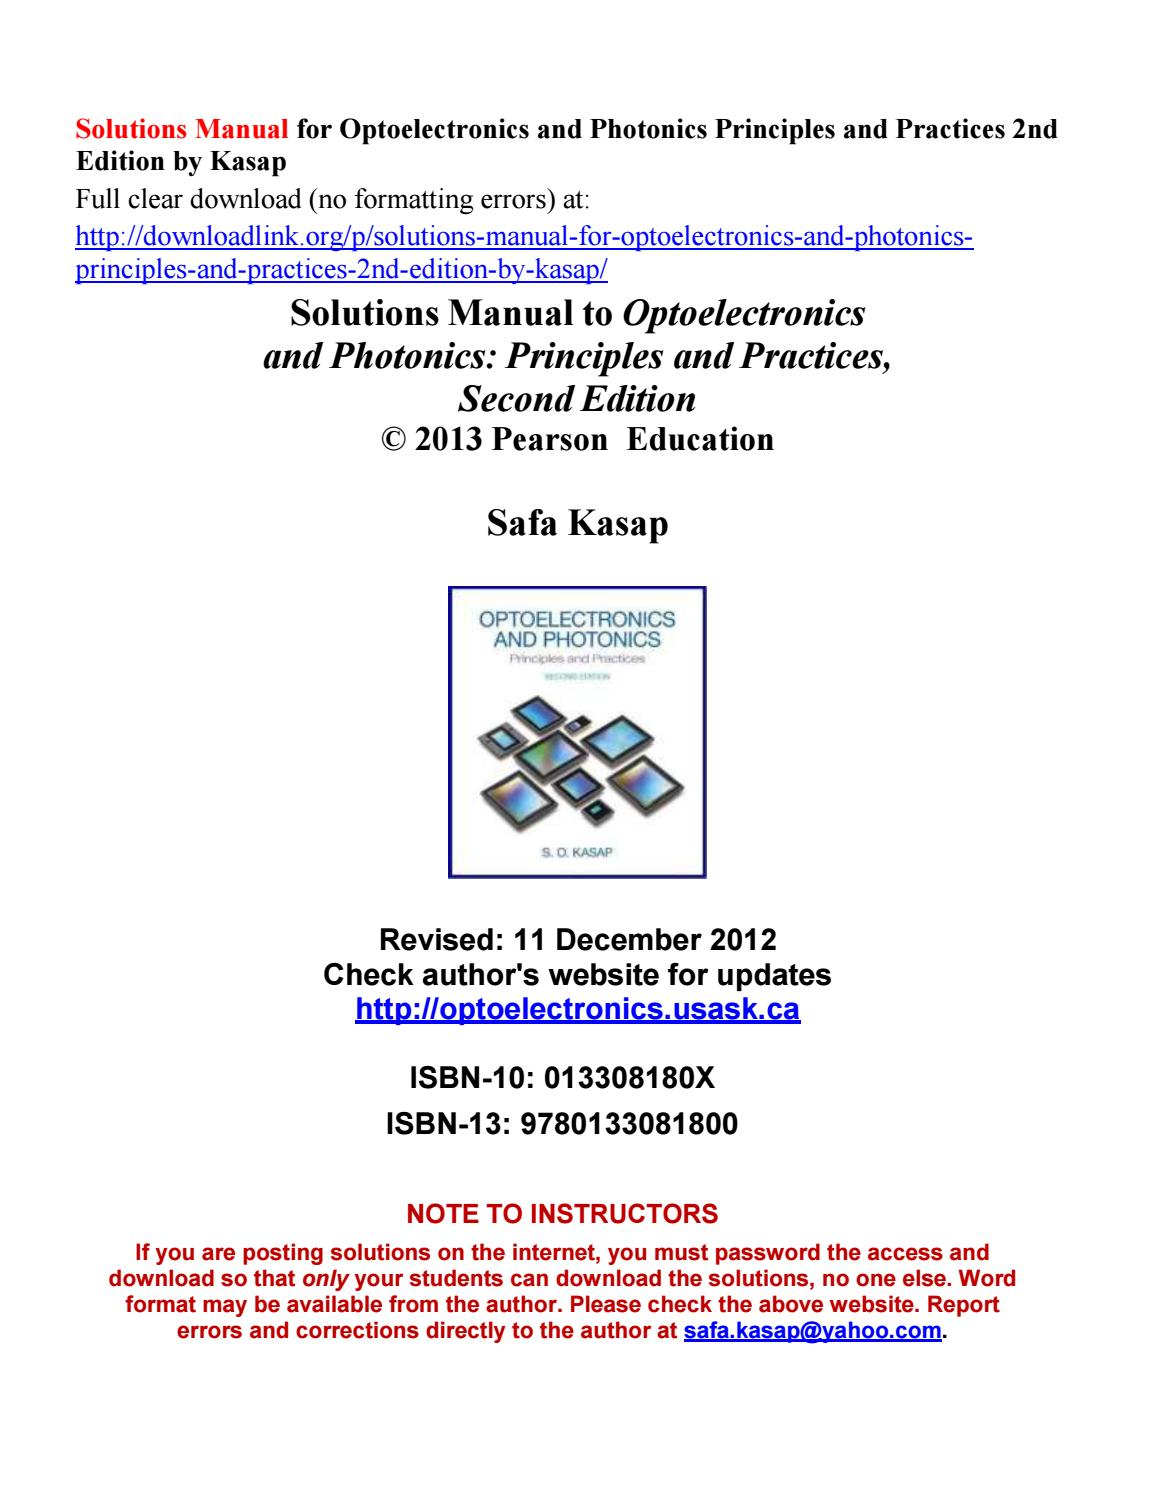 Solutions Manual for Optoelectronics and Photonics Principles and Practices  2nd Edition by Kasap by Russelleeq - issuu